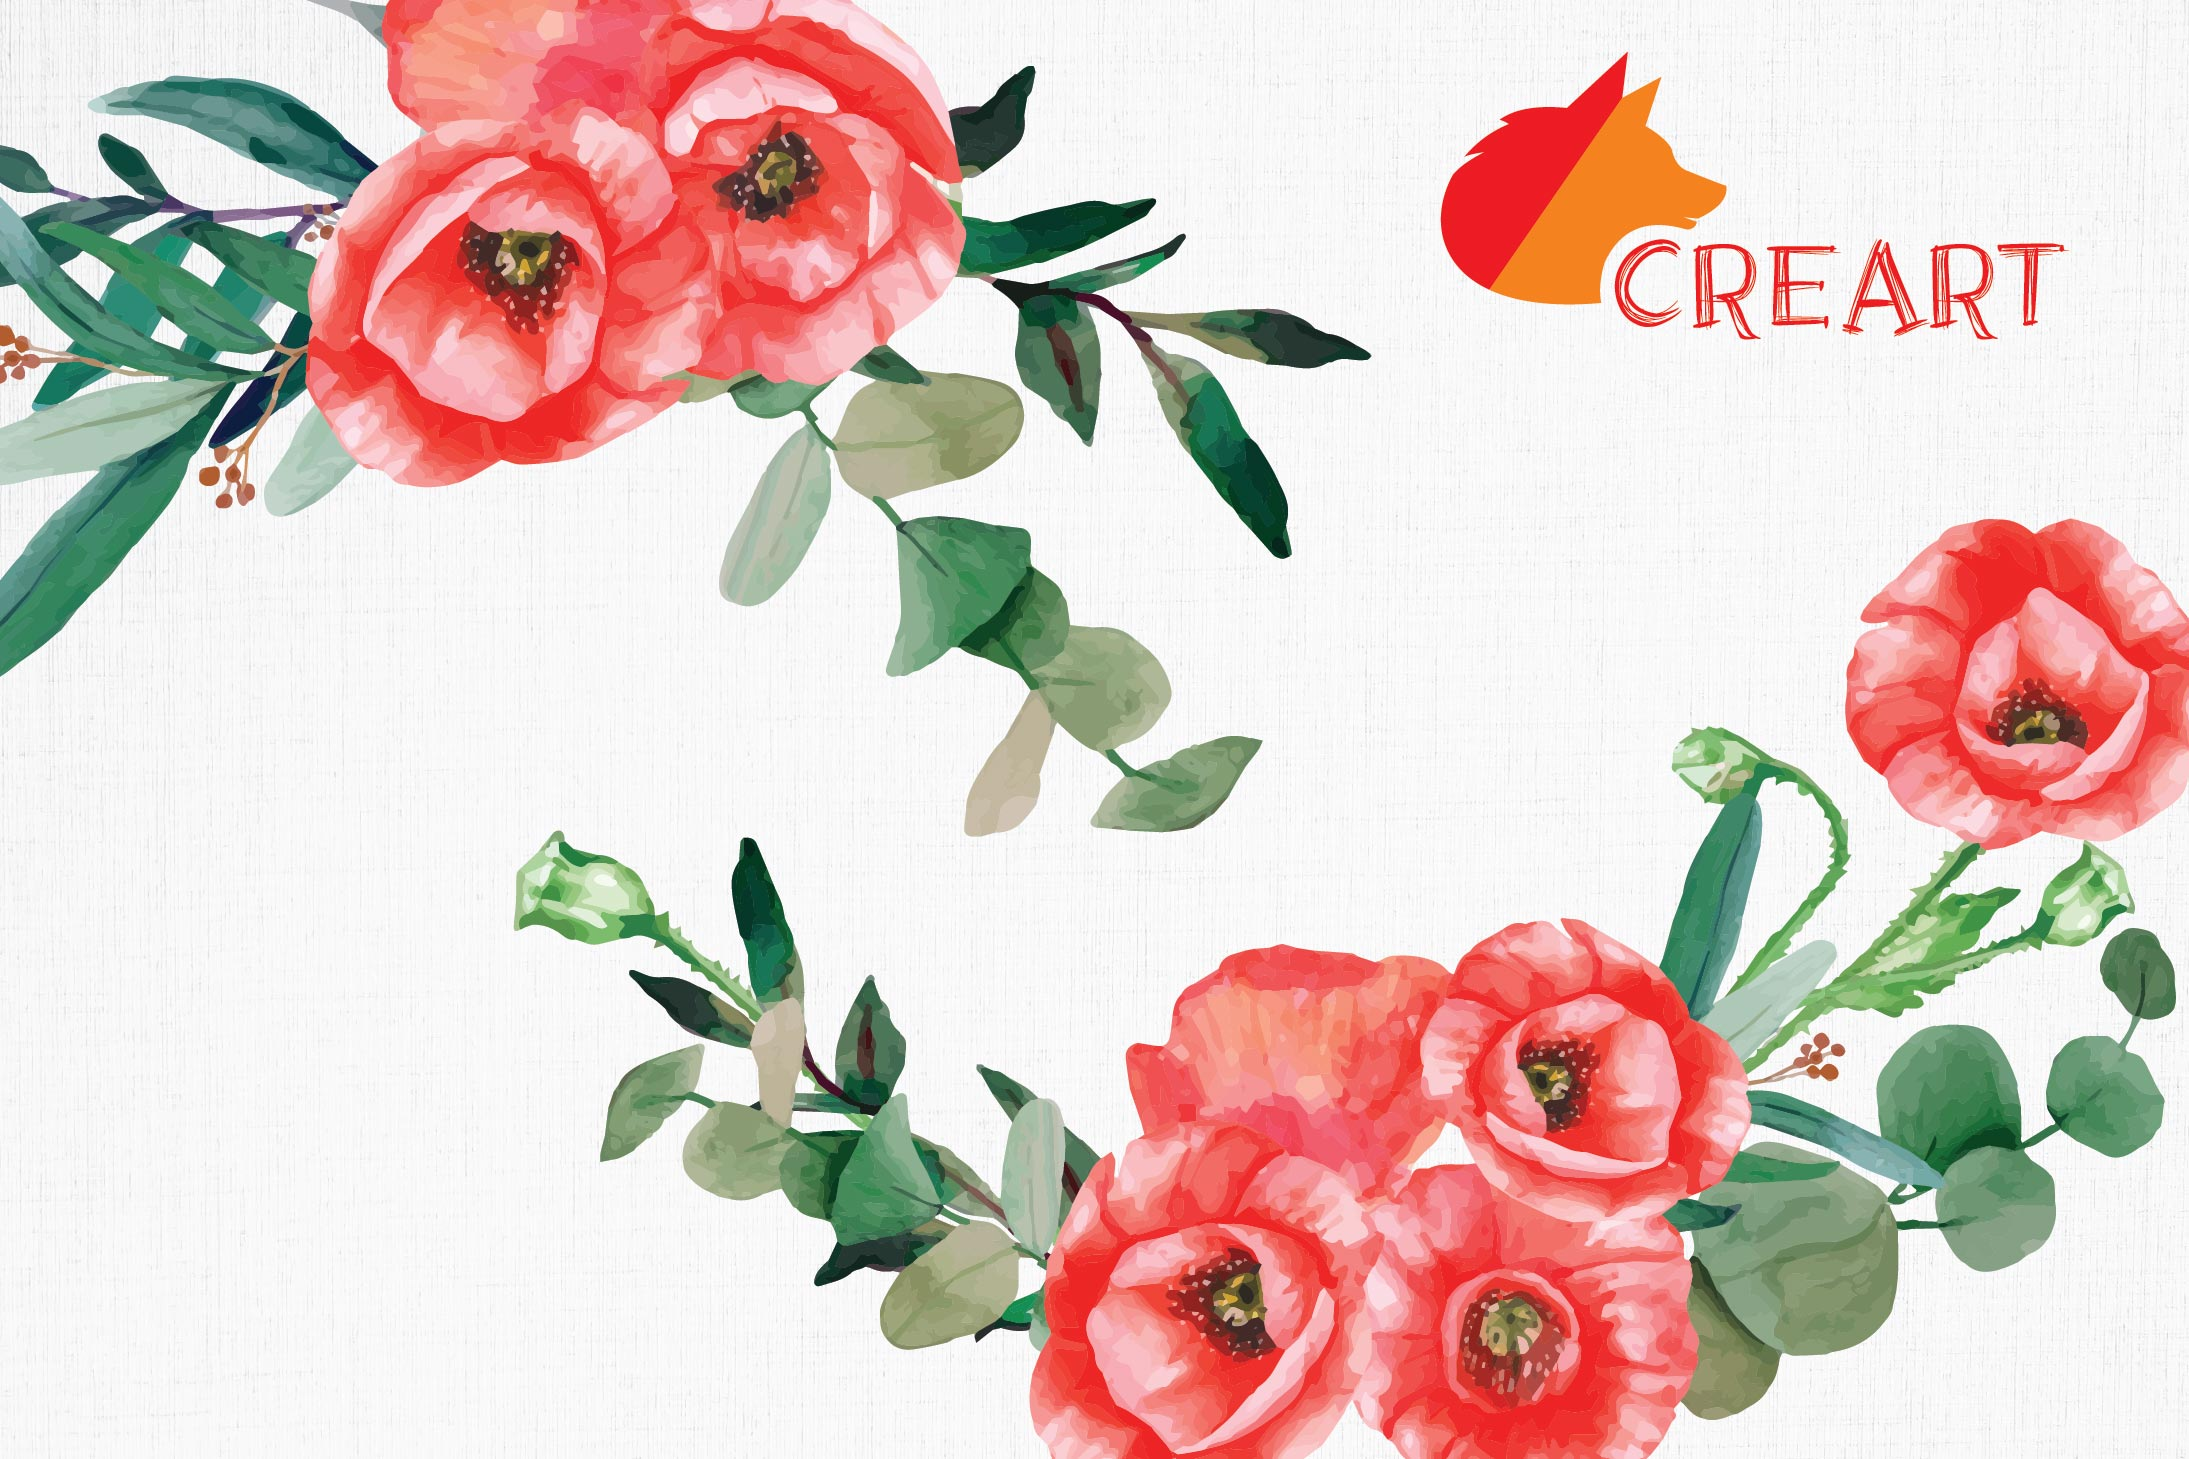 Red poppies floral watercolor wedding bouquets, floral decor example image 4